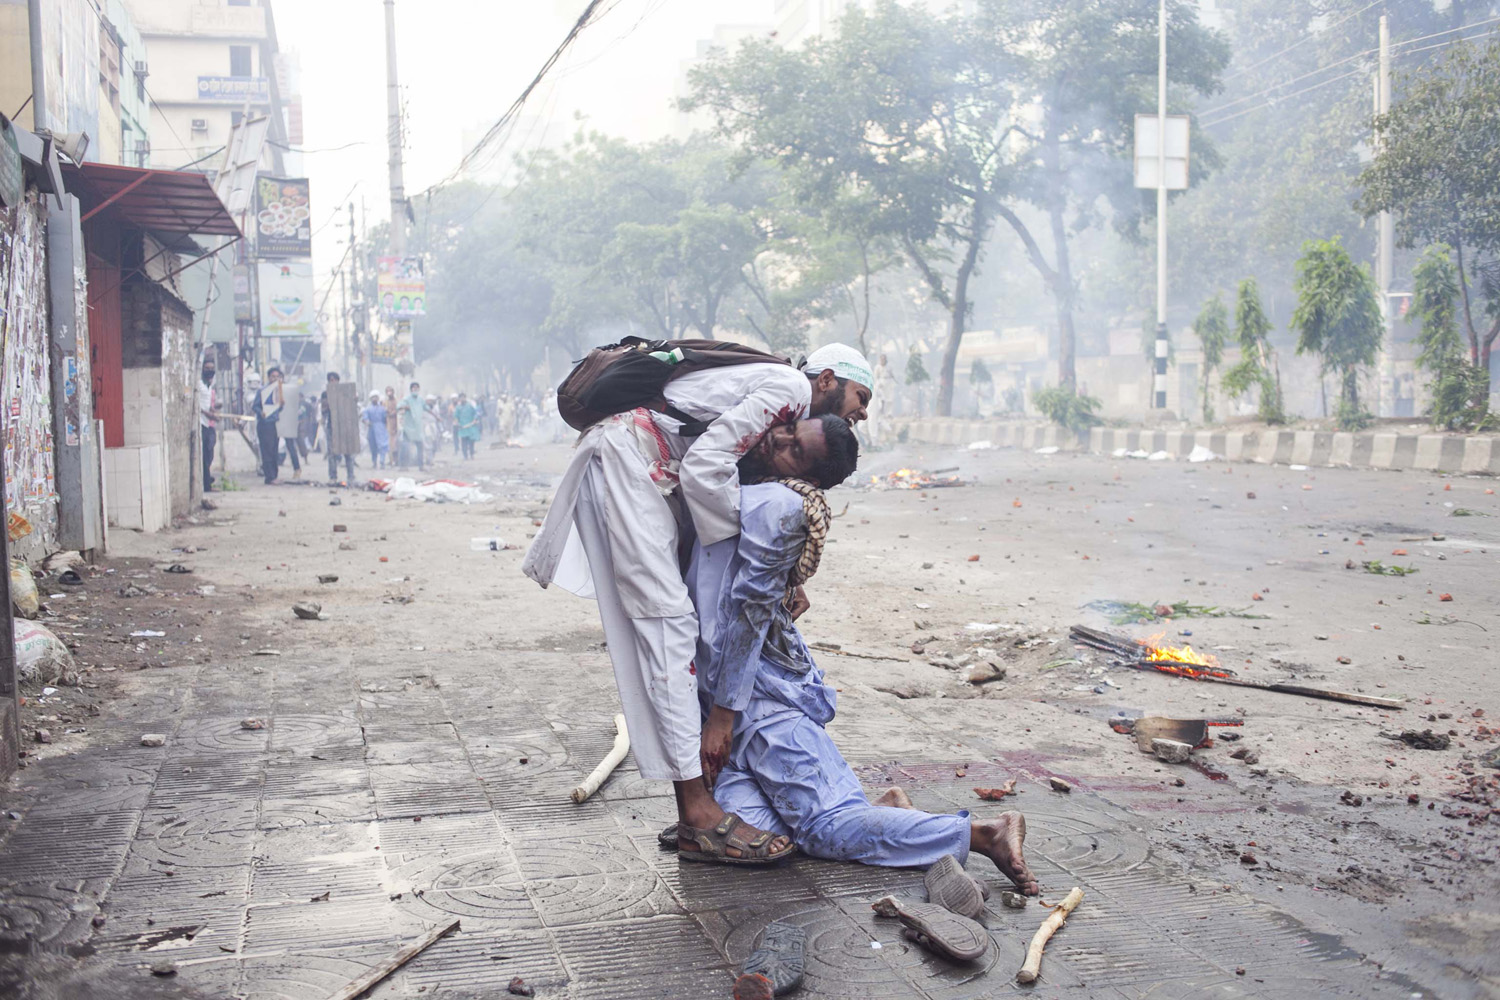 Hefazat-e-Islam locked in clashes with police in Dhaka